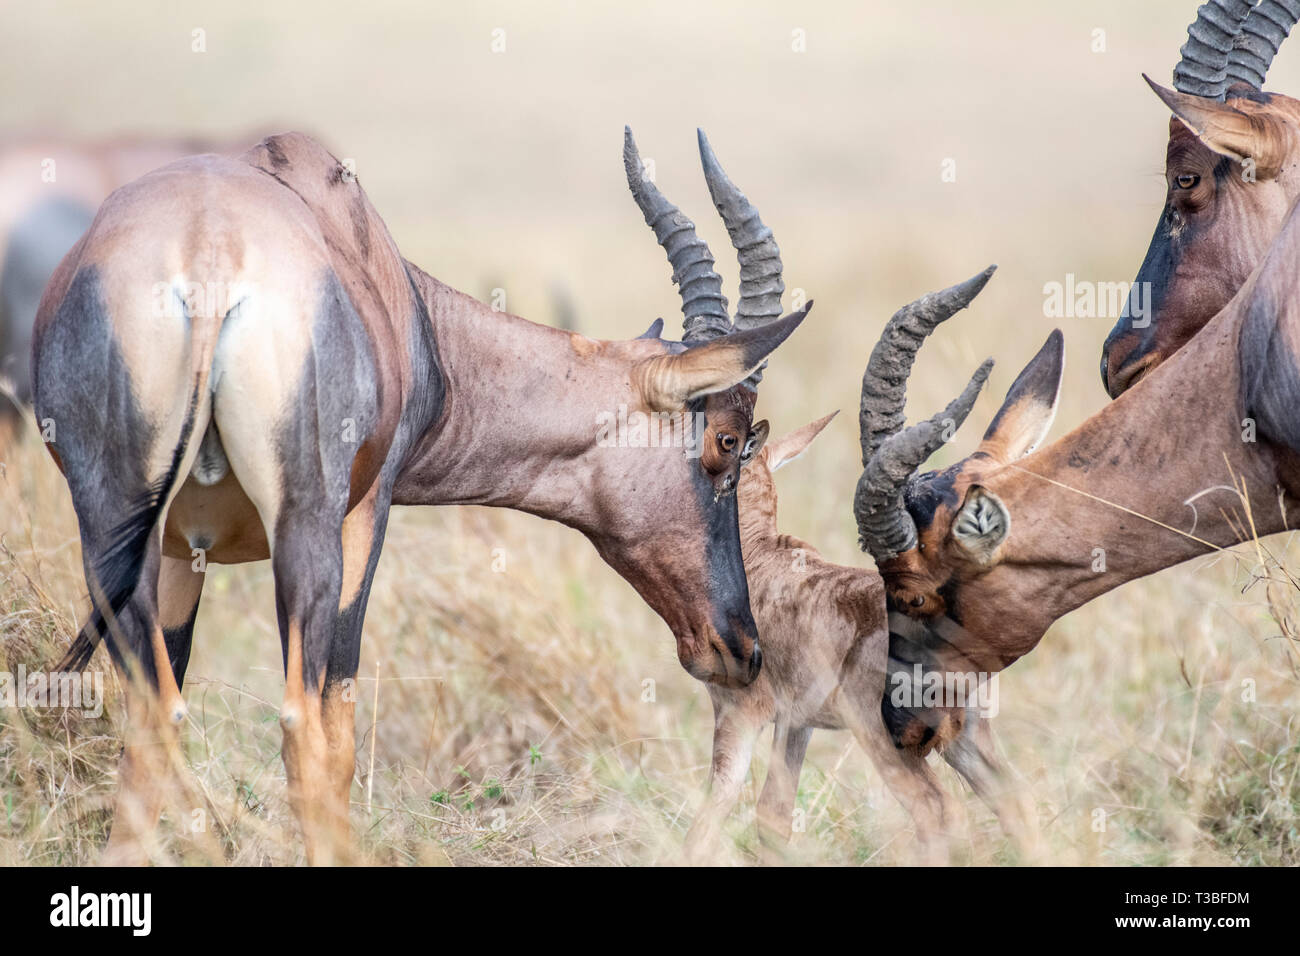 Mother Hartebeest trying to protect baby from male in Mara triangle - Stock Image